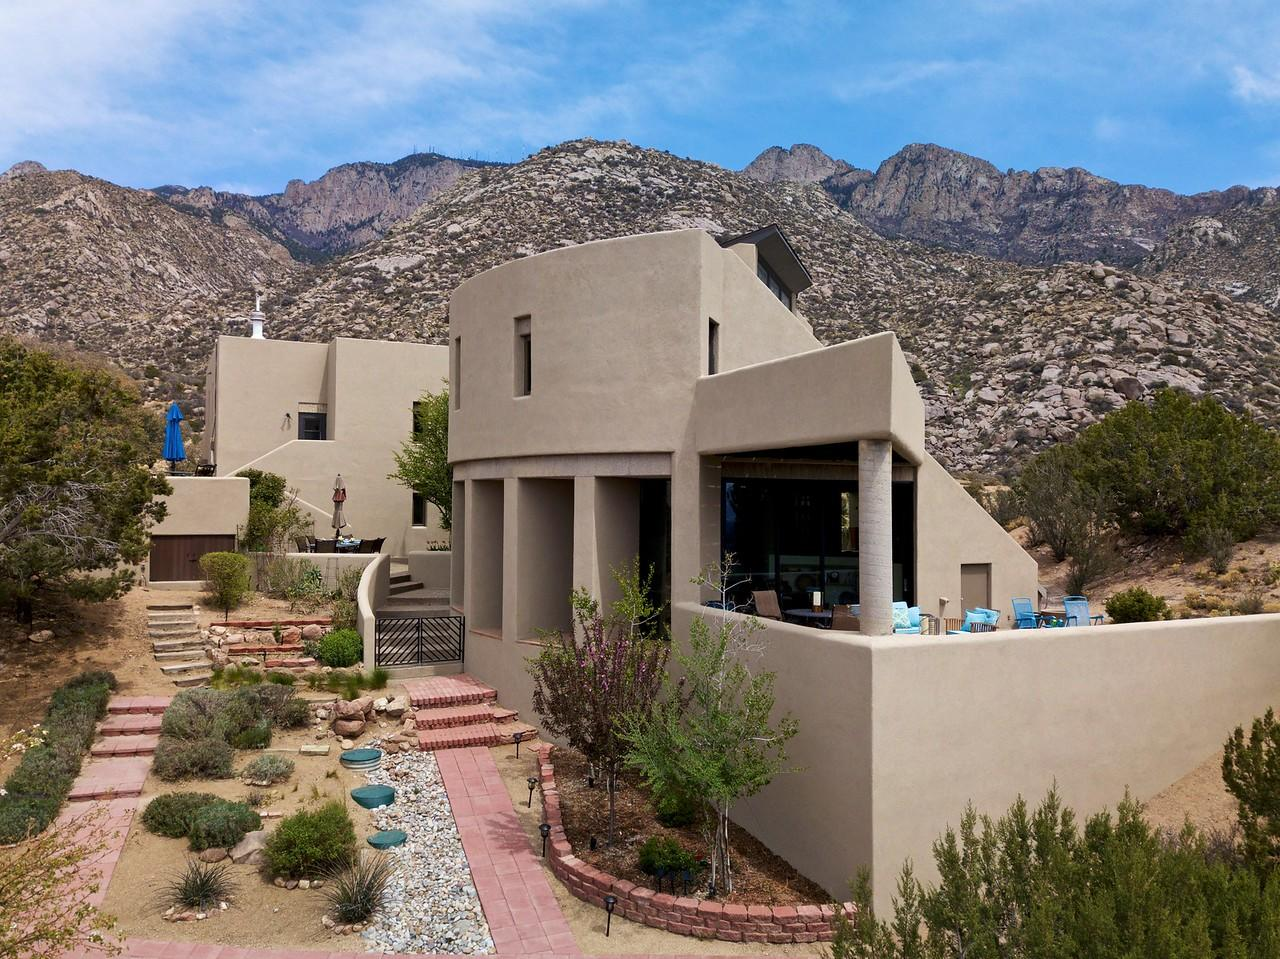 250 SPRING CREEK PLACE NE, ALBUQUERQUE, NM 87122